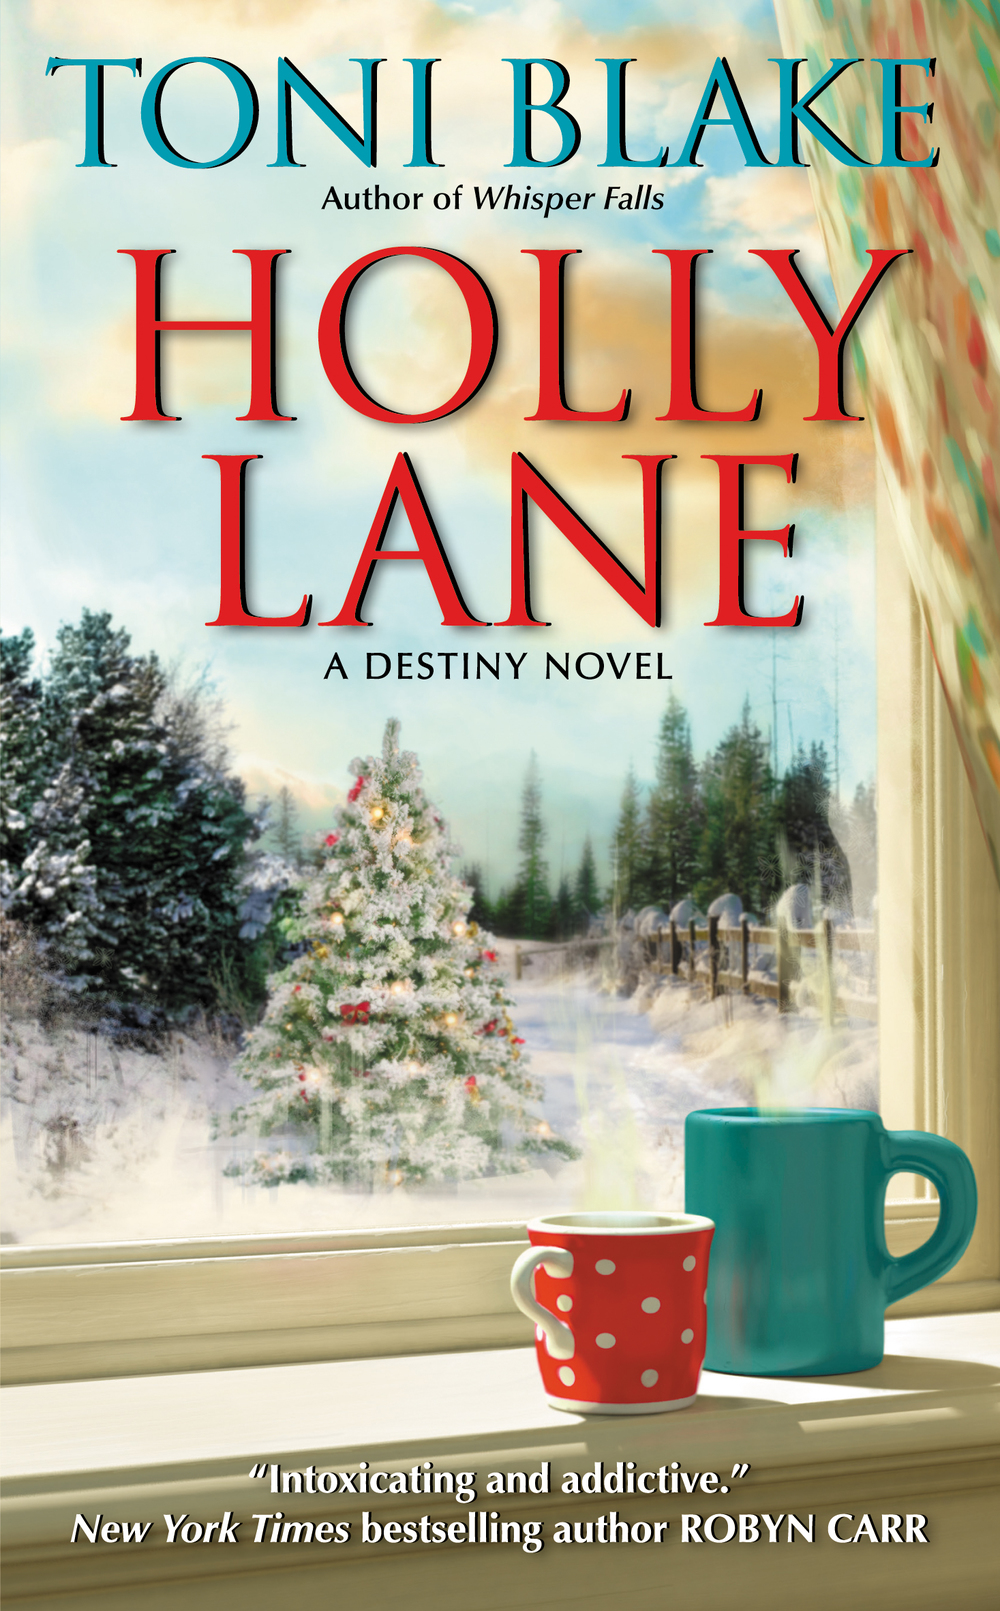 olly Lane Destiny Series, book 4 Sue Ann Simpkins & Adam Becker November 2011